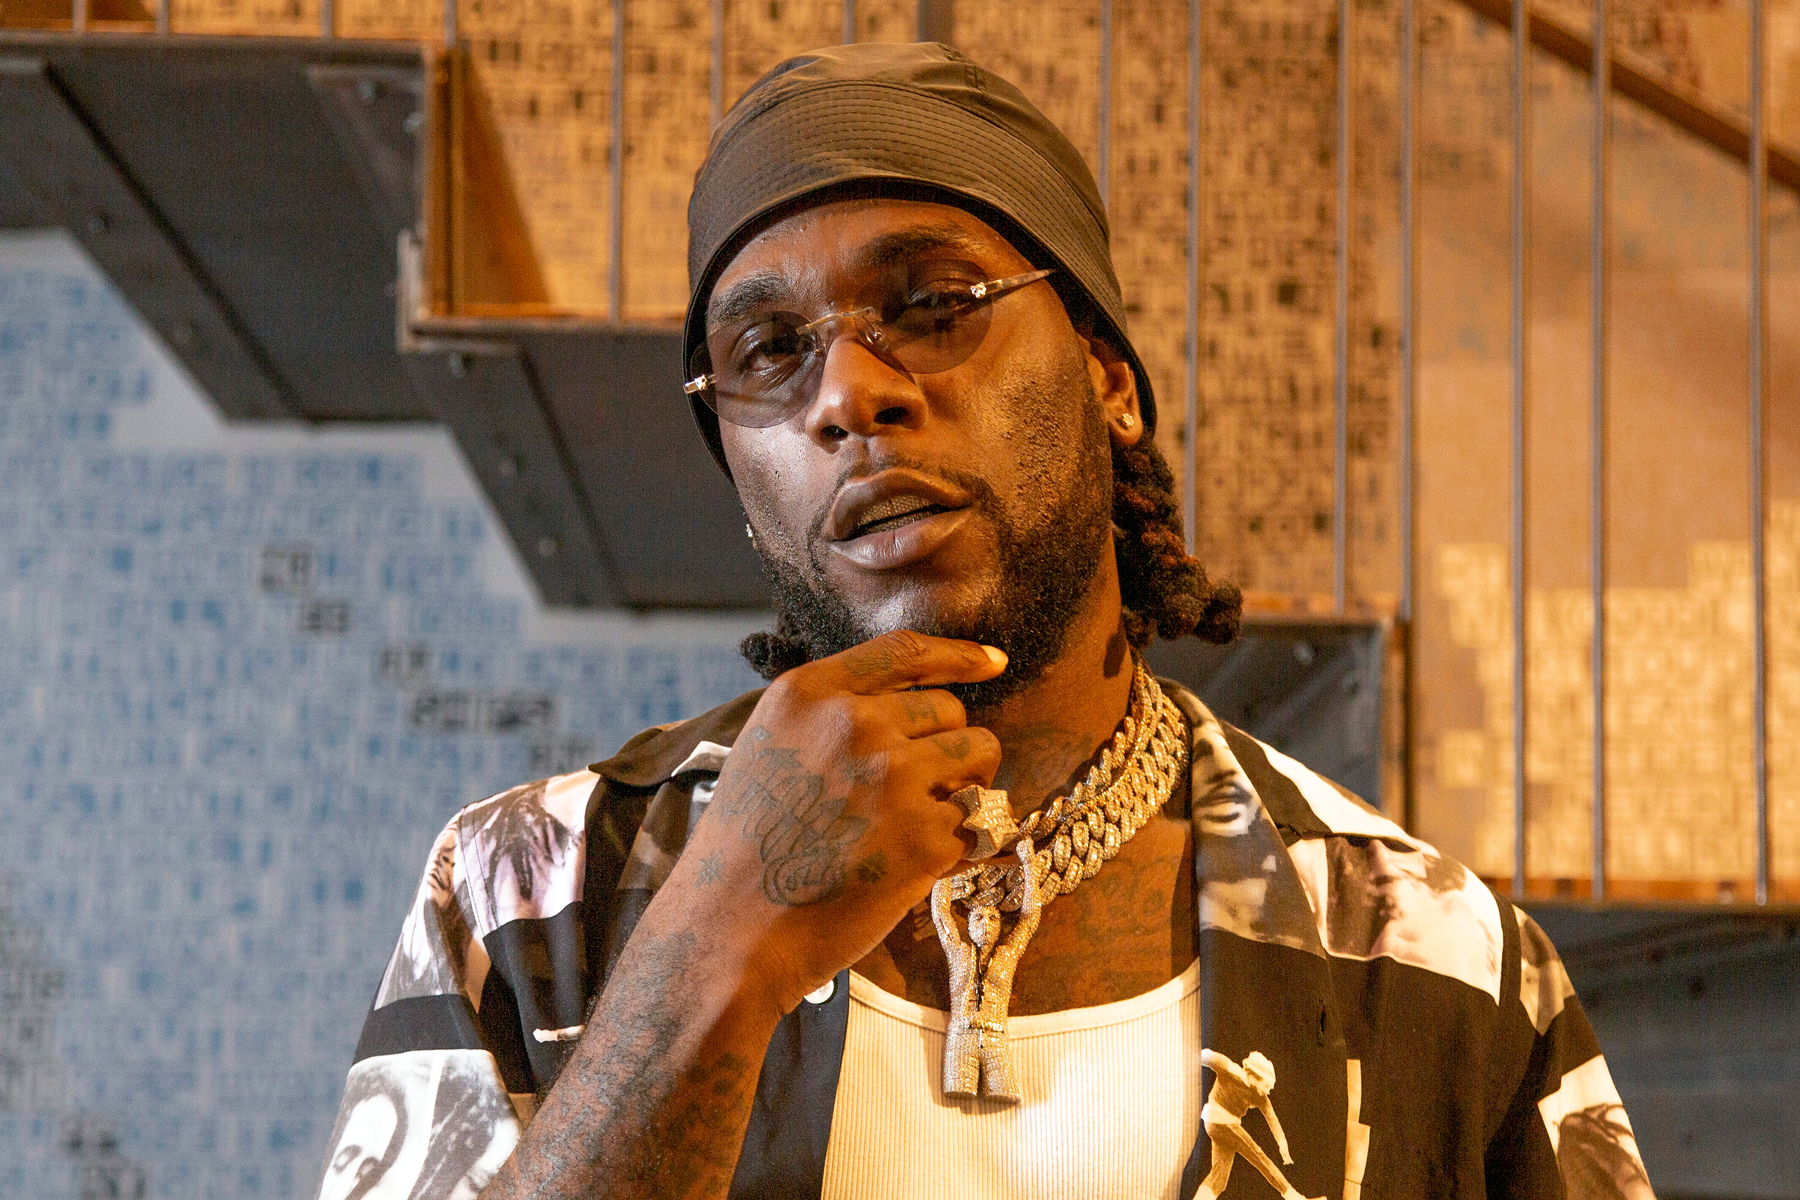 Burna Boy tops chart as he becomes the first artiste to reach 100M streams on Boomplay